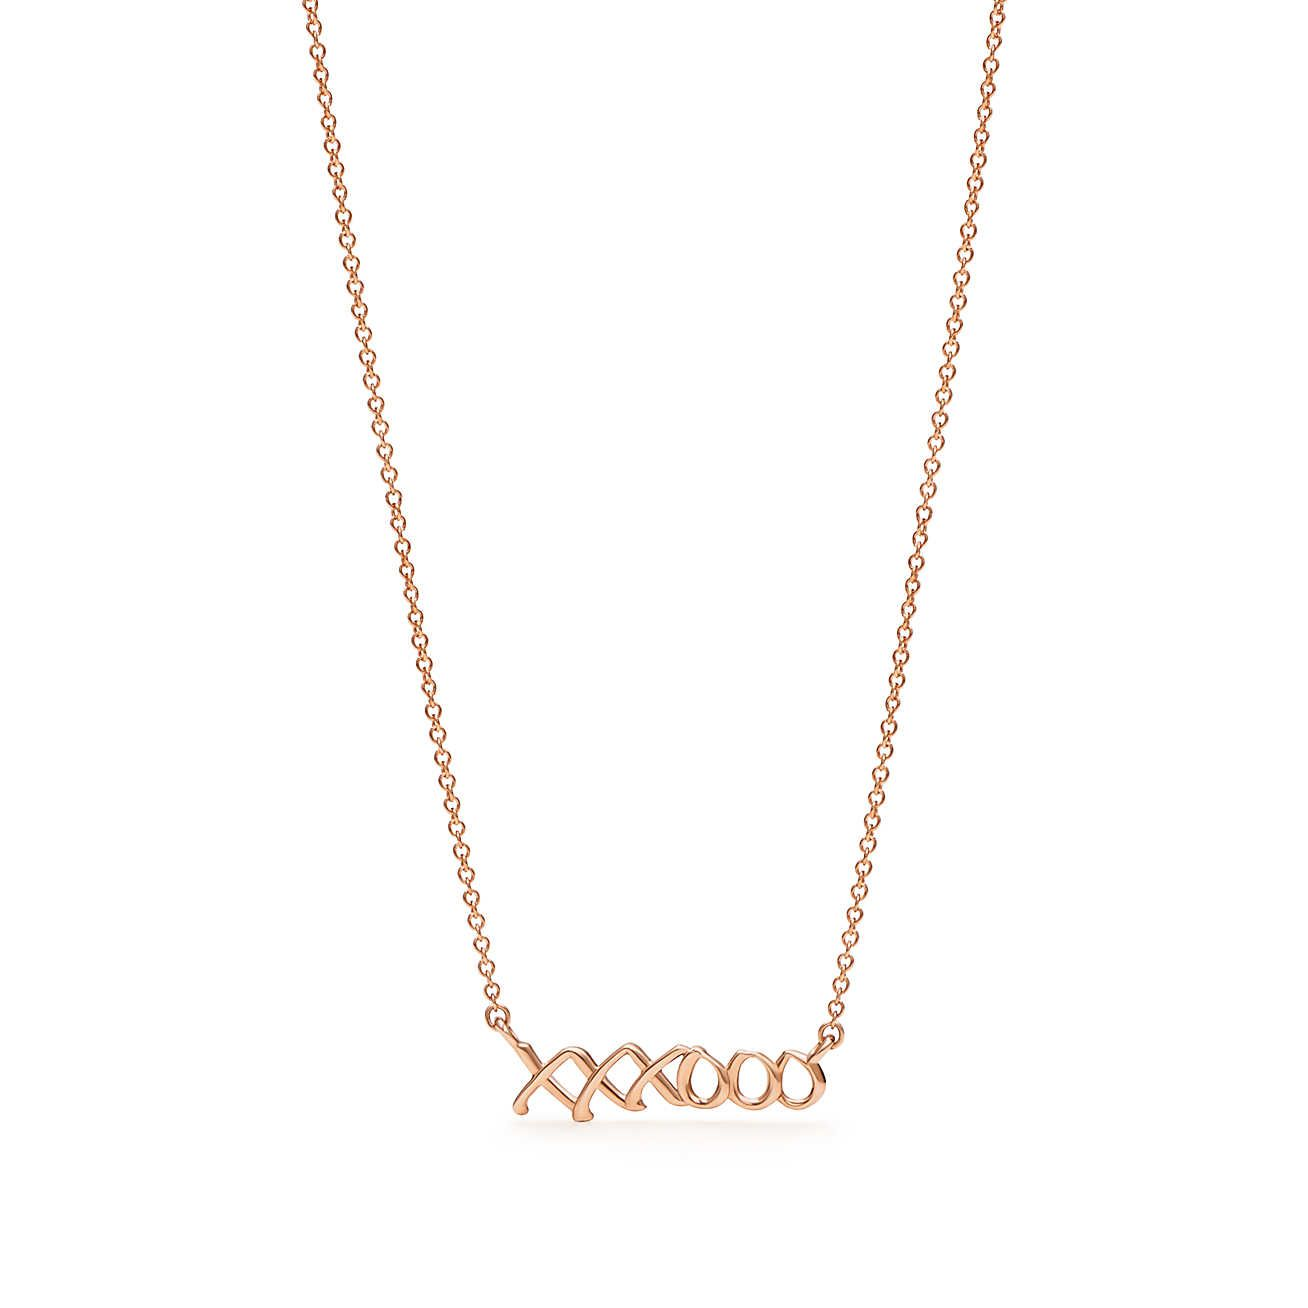 Paloma 39 S Graffiti Love Amp Kisses Pendant In 18k Rose Gold Mini Jewelry Showcases Diamond Drop Necklace Tiffany Jewelry